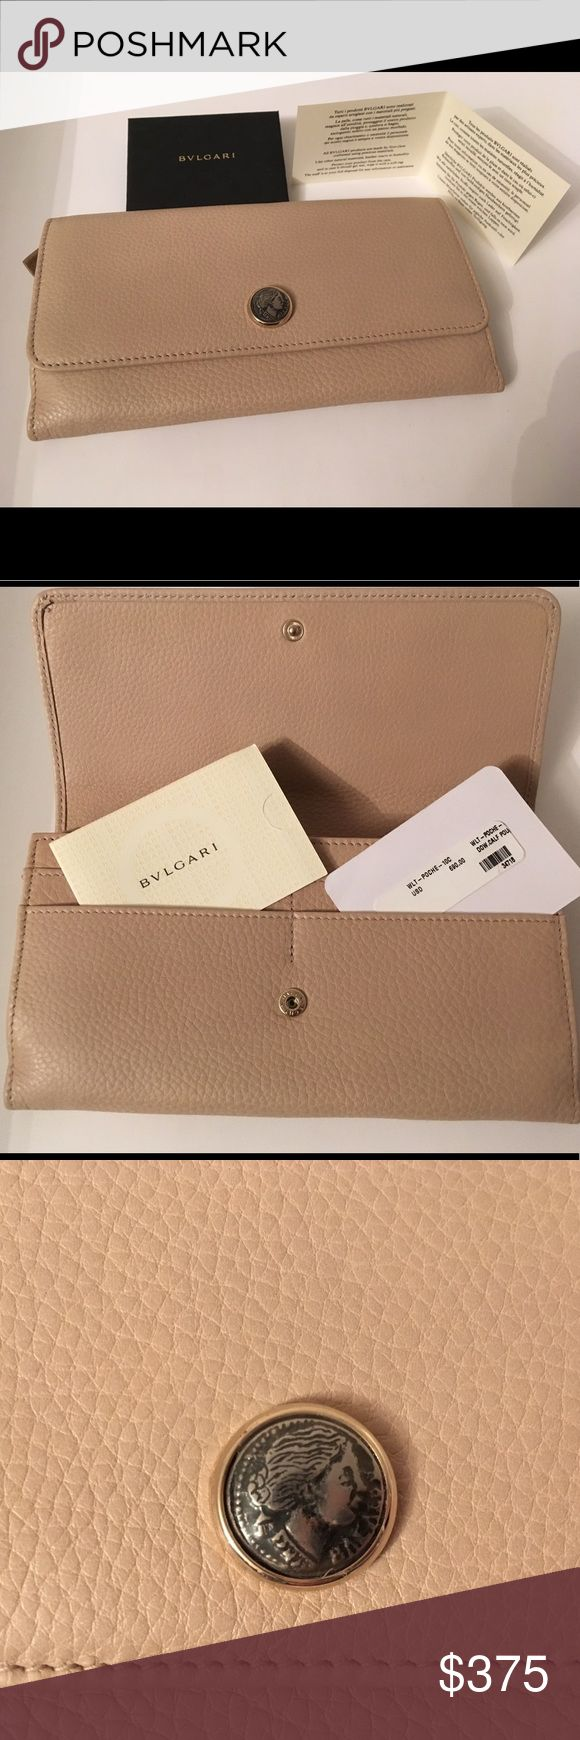 💯Authentic BVLGARI Grained Calf Leather Wallet Authentic brand new with tags Bvlgari grained leather wallet in cream/light gold color.  This wallet has total of 10 compartments for credit cards, inside zipper for change and two money holder compartments. The leather is so luxurious, it feels like butter!  Comes with original price tag and care card. Once you have this wallet you won't let it go!  I have two, so selling one 😊. Bvlgari Bags Wallets